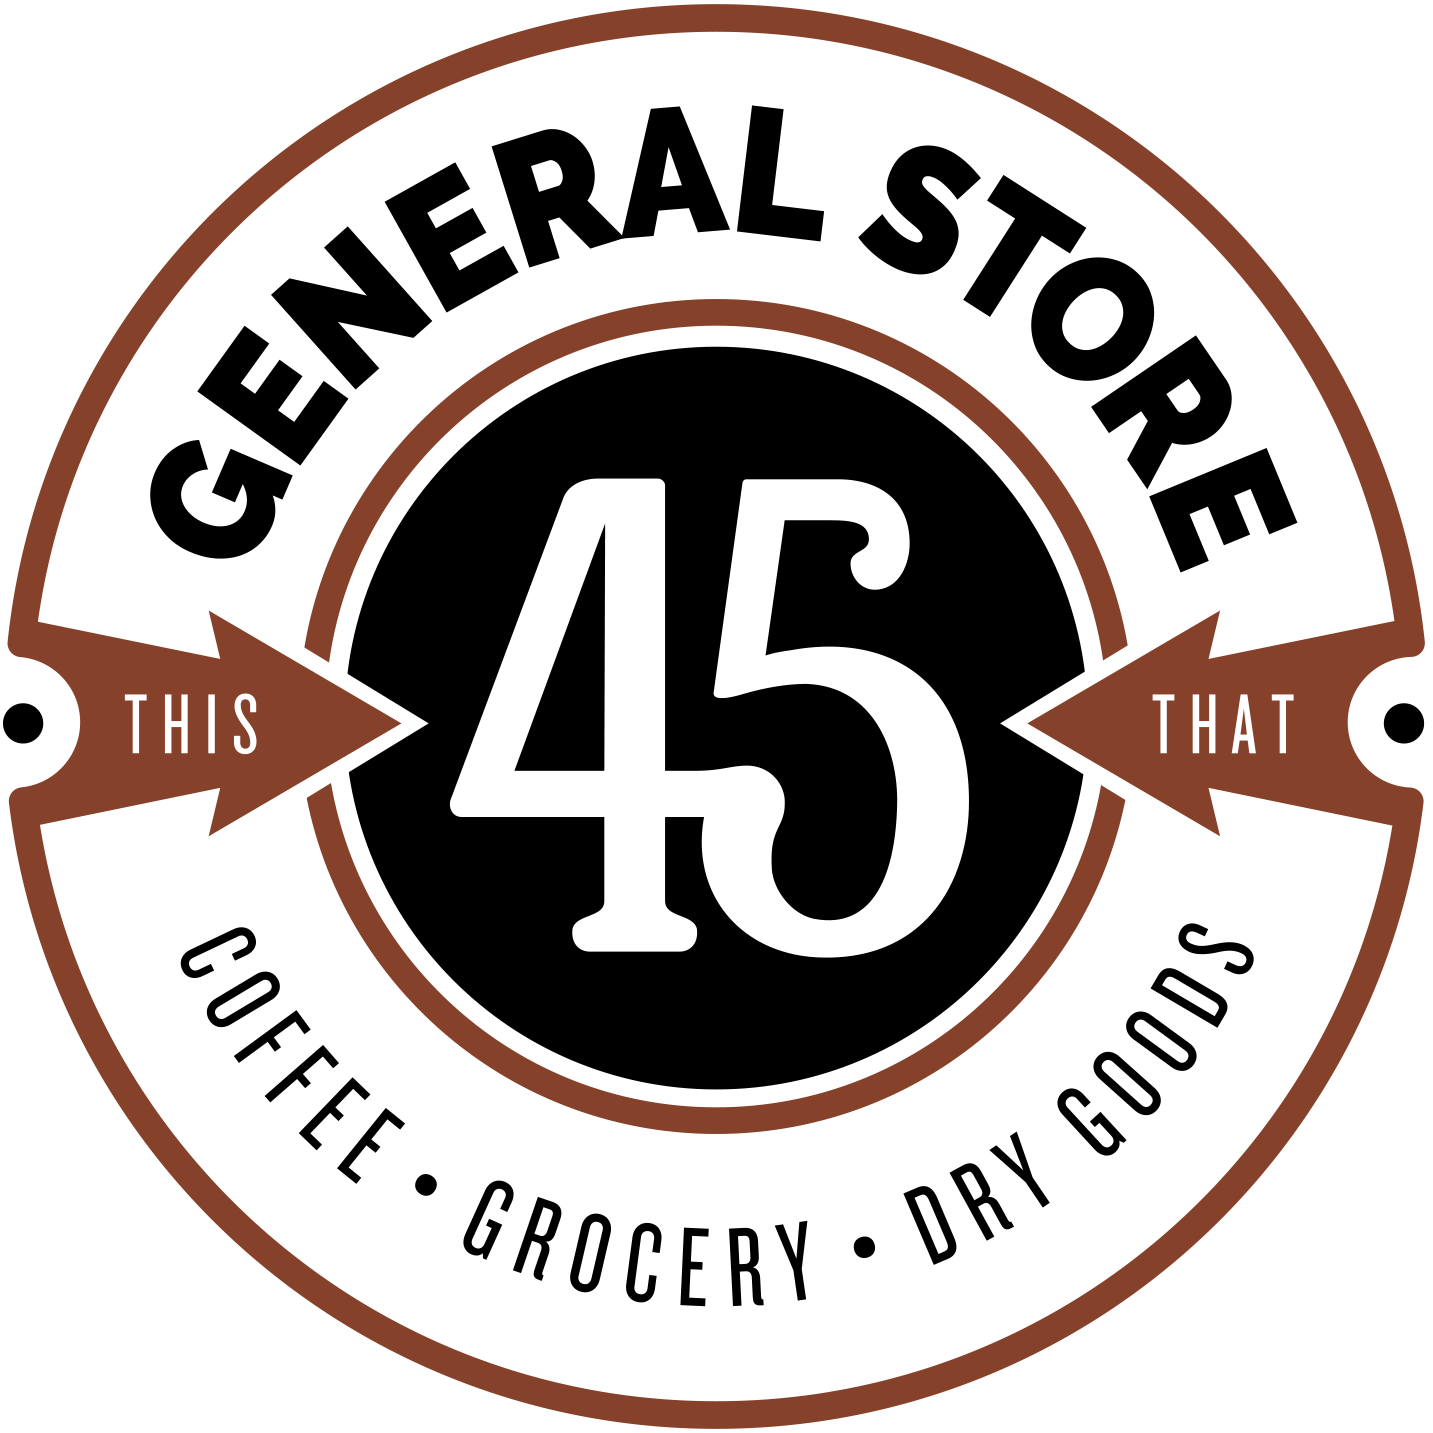 General Store 45